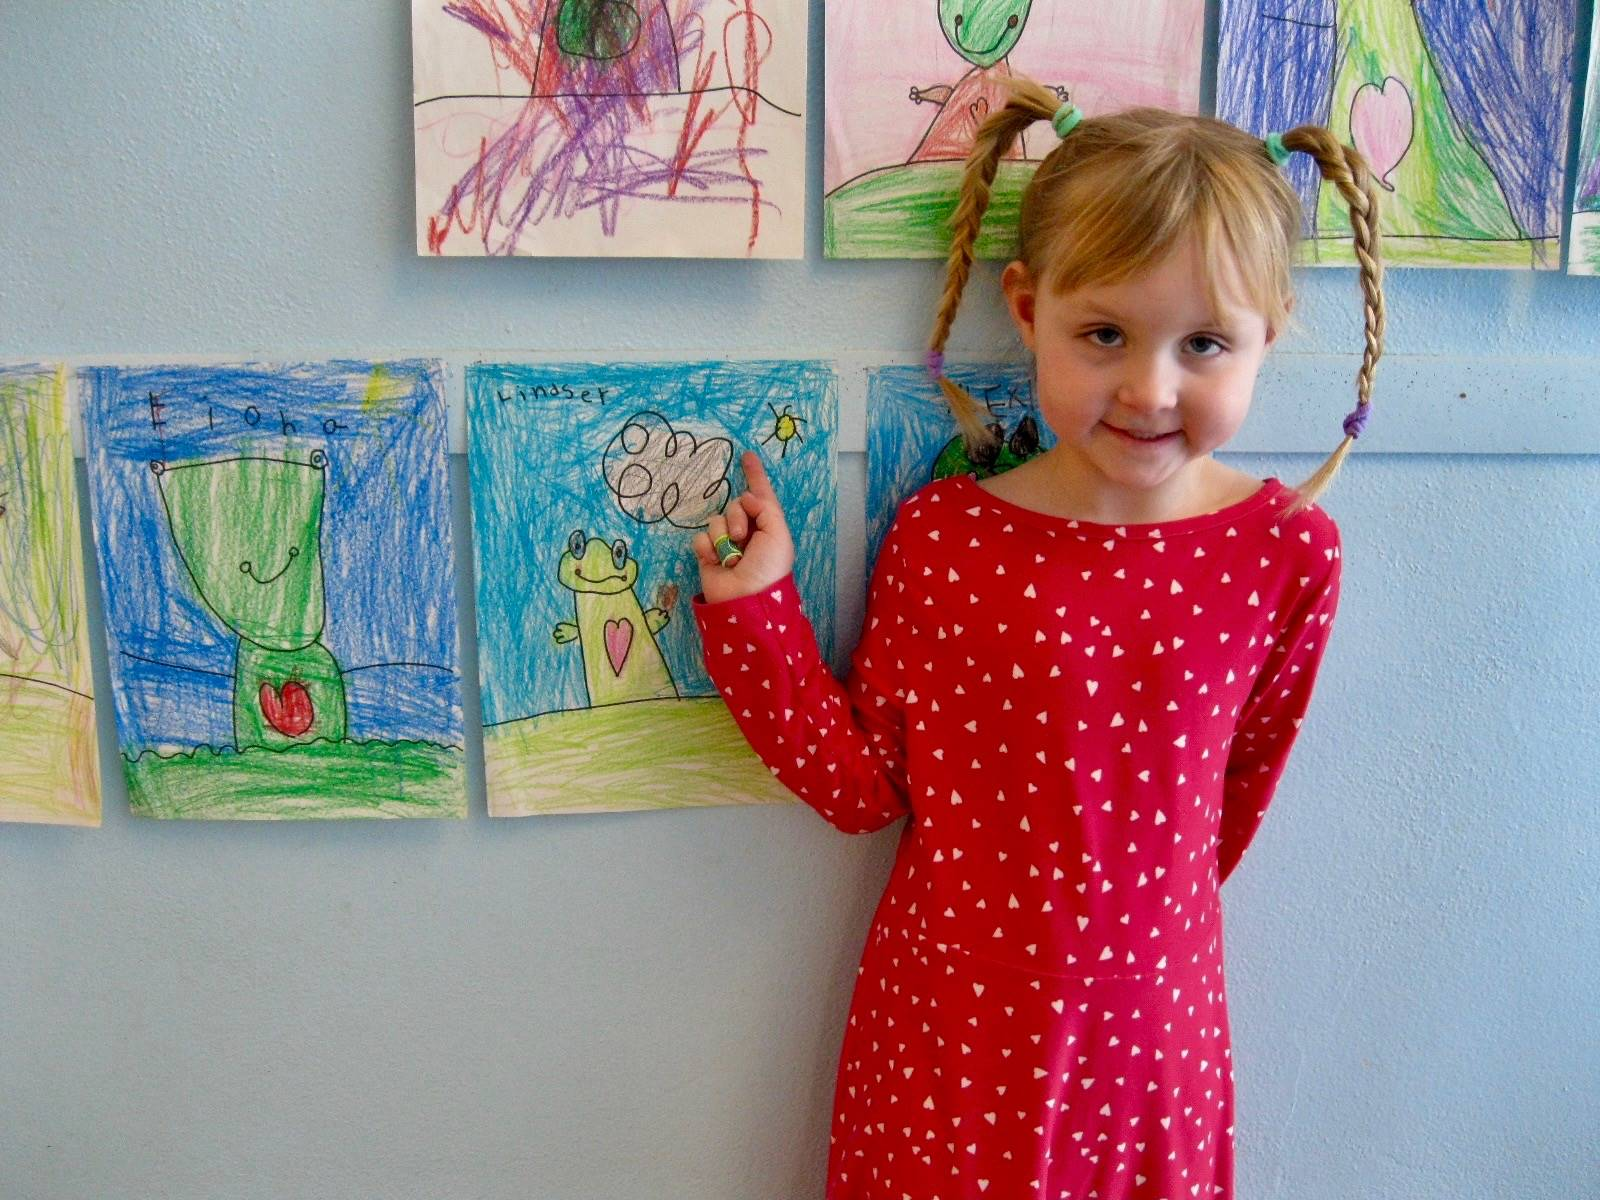 A student shows off her art.